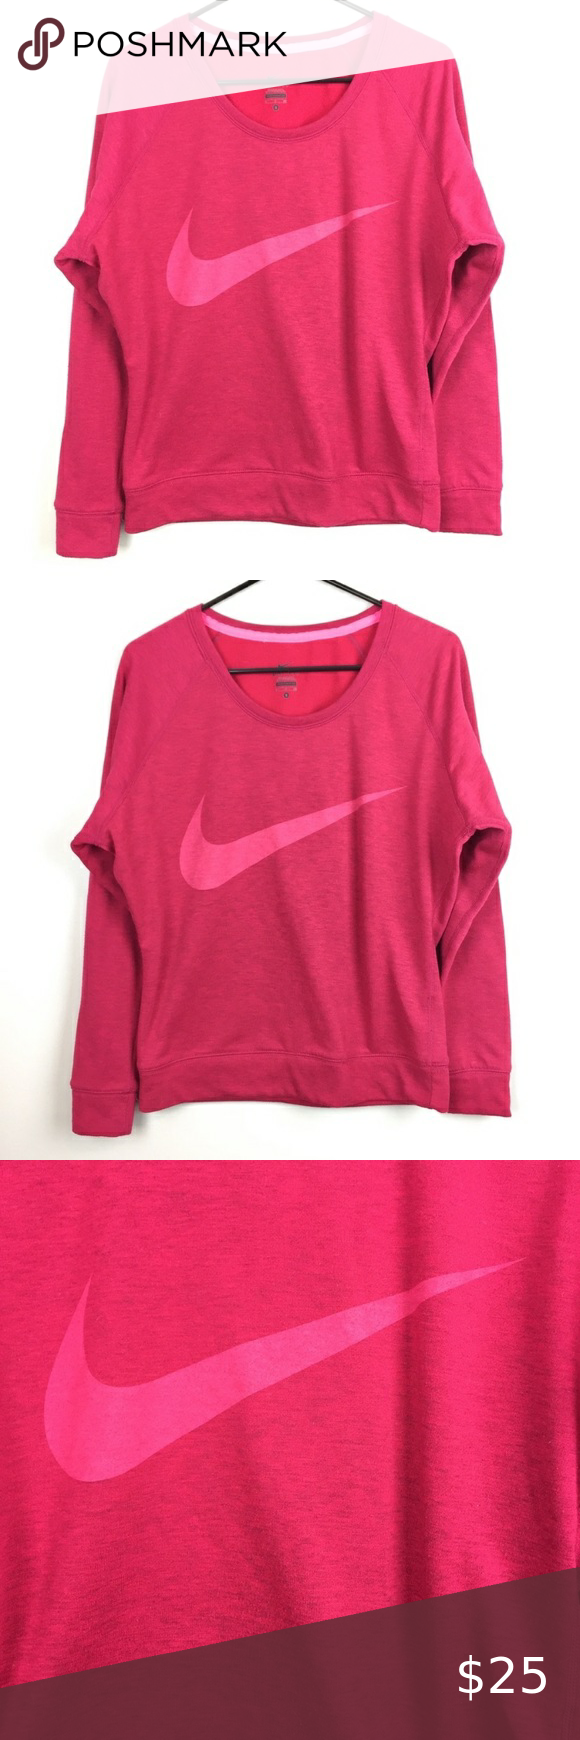 Nike Pink Dri Fit Logo Swoosh Sweatshirt S Nike Dri Fit Pullover Sweatshirt Features A Darker Pink Color With A Lighter Pi Sweatshirts Clothes Design Pullover [ 1740 x 580 Pixel ]